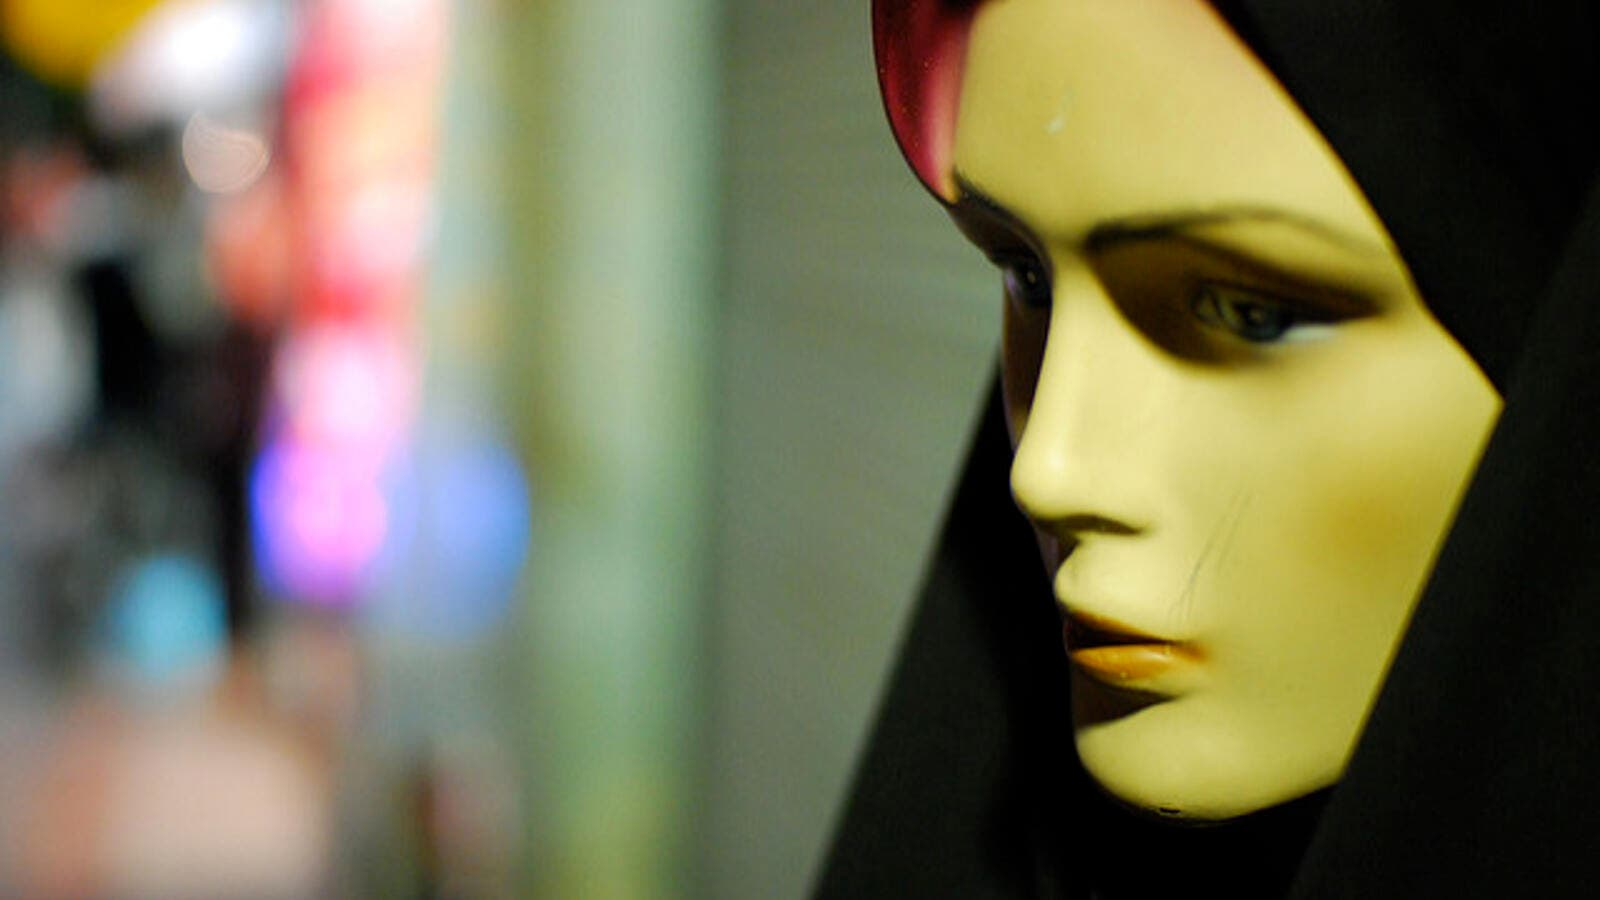 A mannequin dressed in hijab in the Shiraz area of Iran (Flickr/Paul Keller)